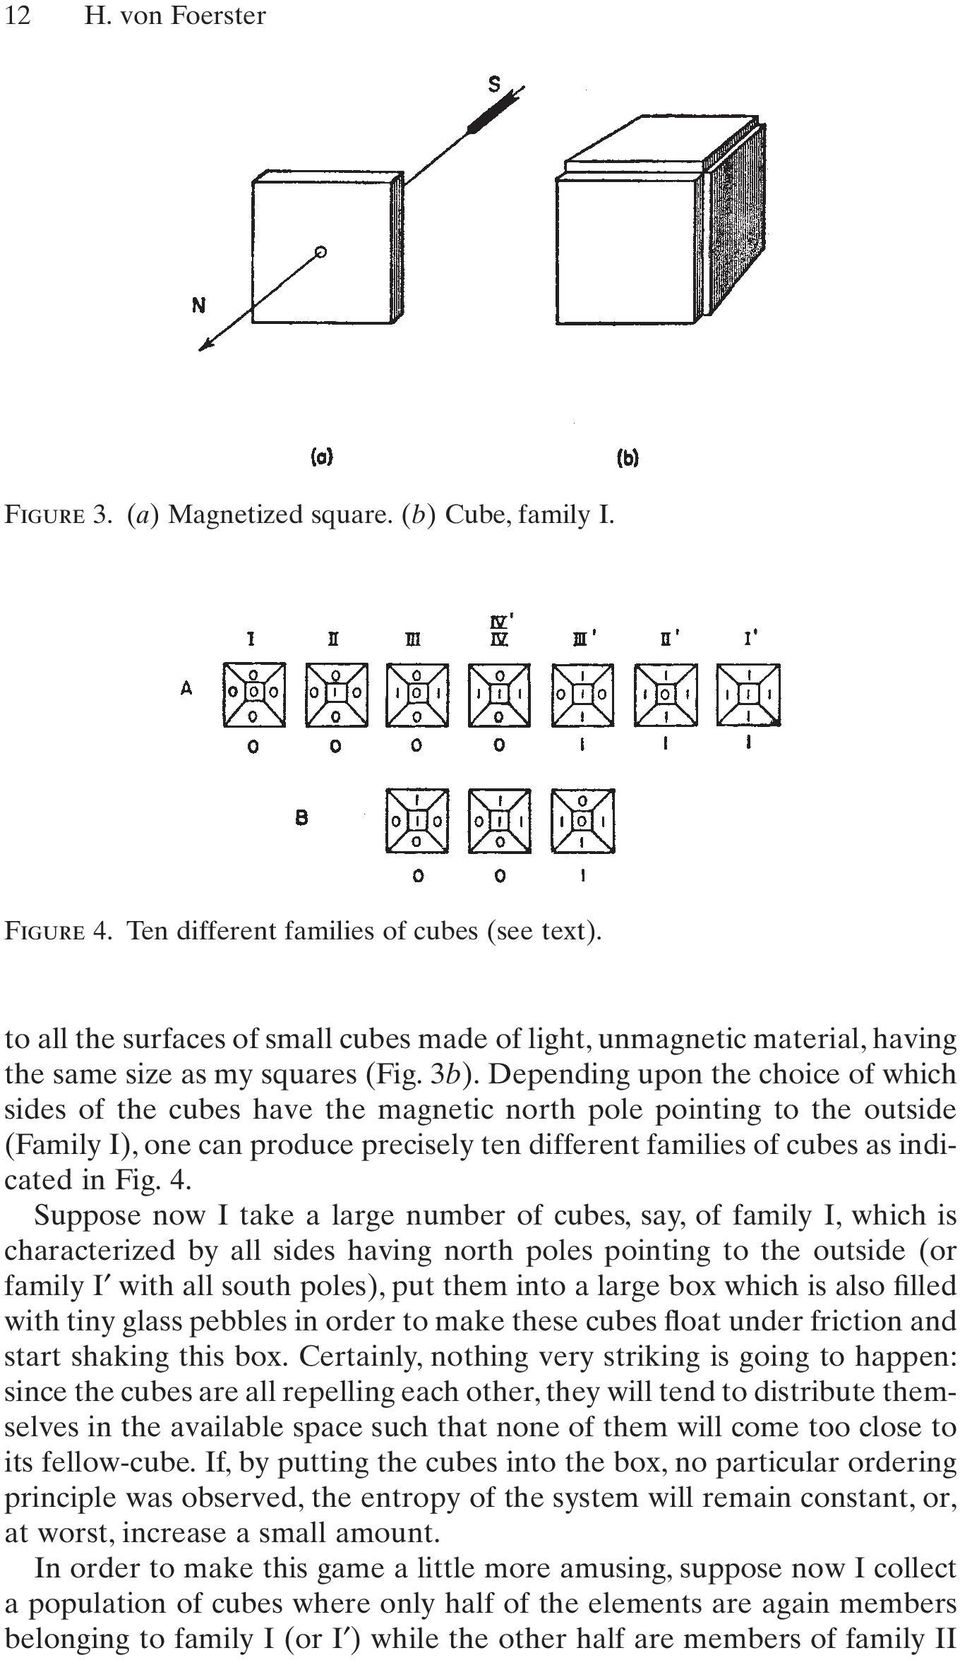 Depending upon the choice of which sides of the cubes have the magnetic north pole pointing to the outside (Family I), one can produce precisely ten different families of cubes as indicated in Fig. 4.